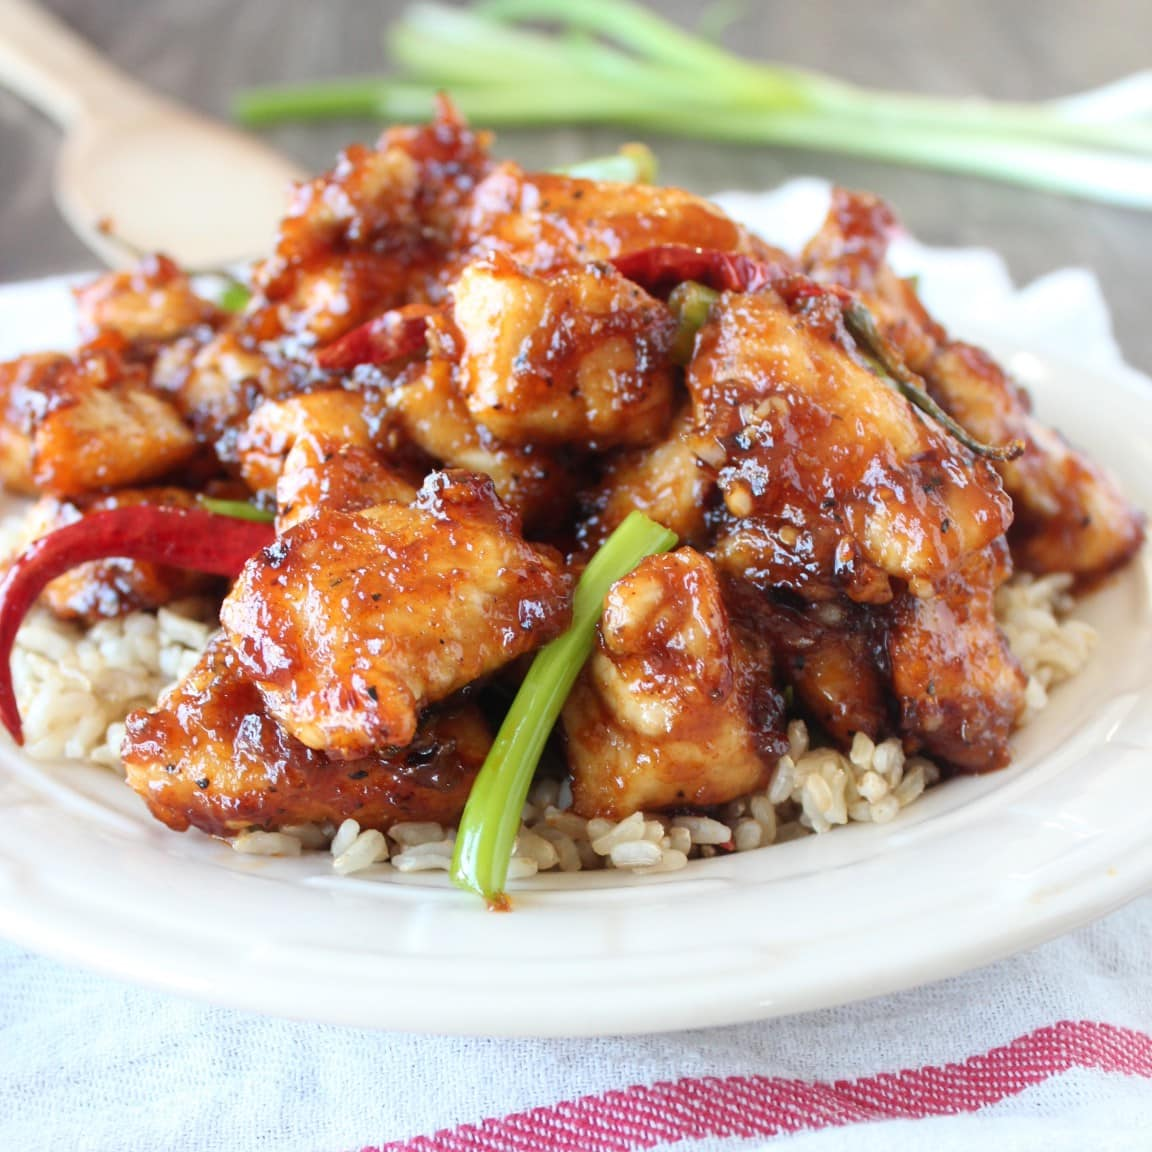 Gluten Free General Tso's Chicken Recipe